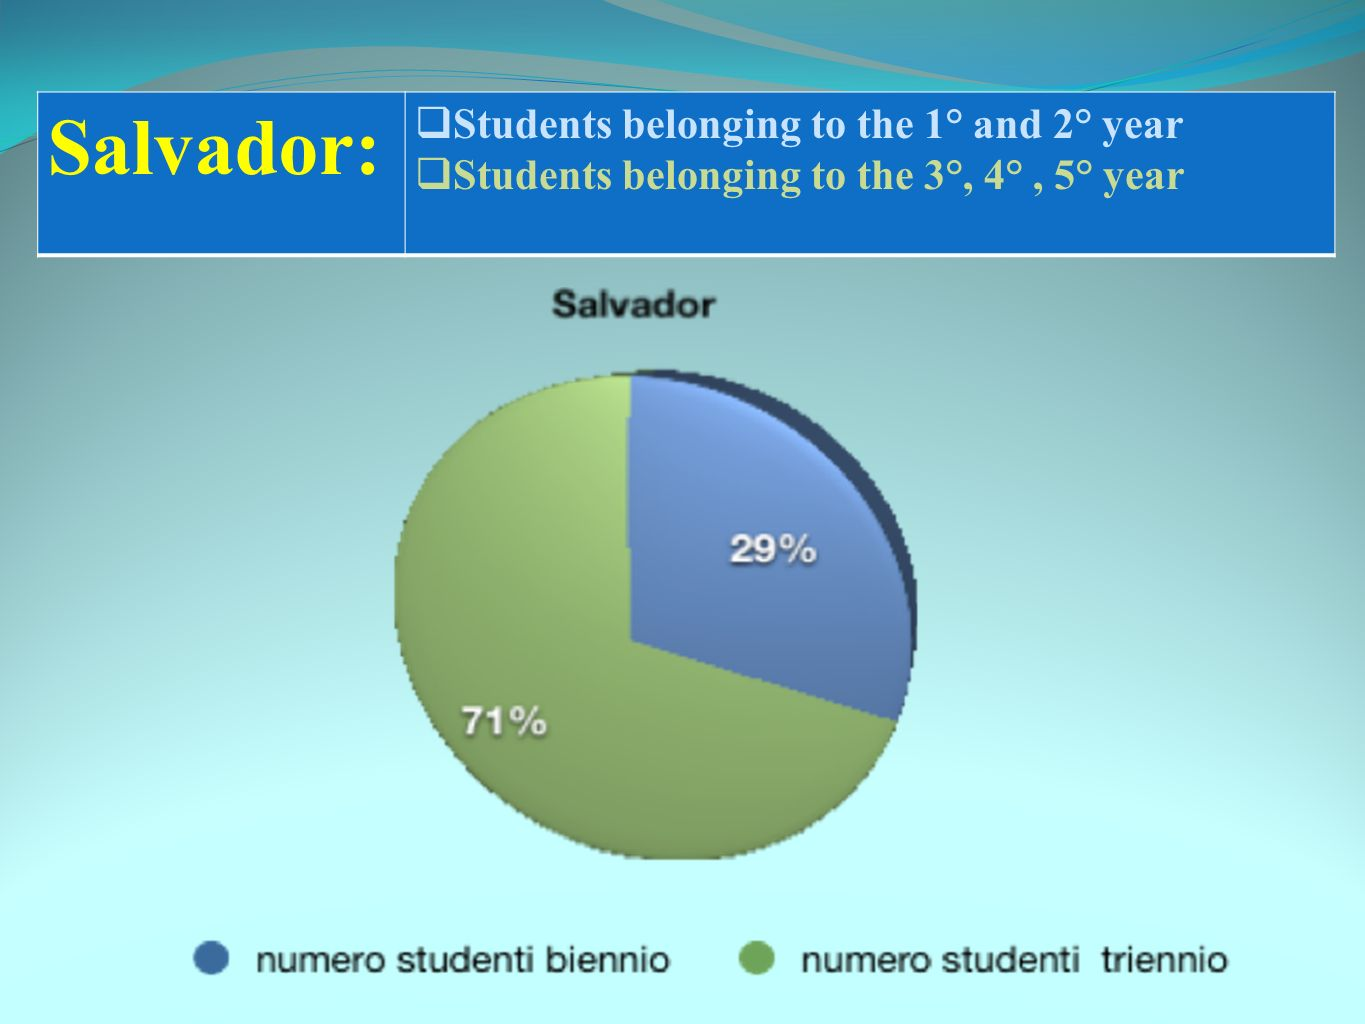 Salvador: Students belonging to the 1° and 2° year Students belonging to the 3°, 4°, 5° year